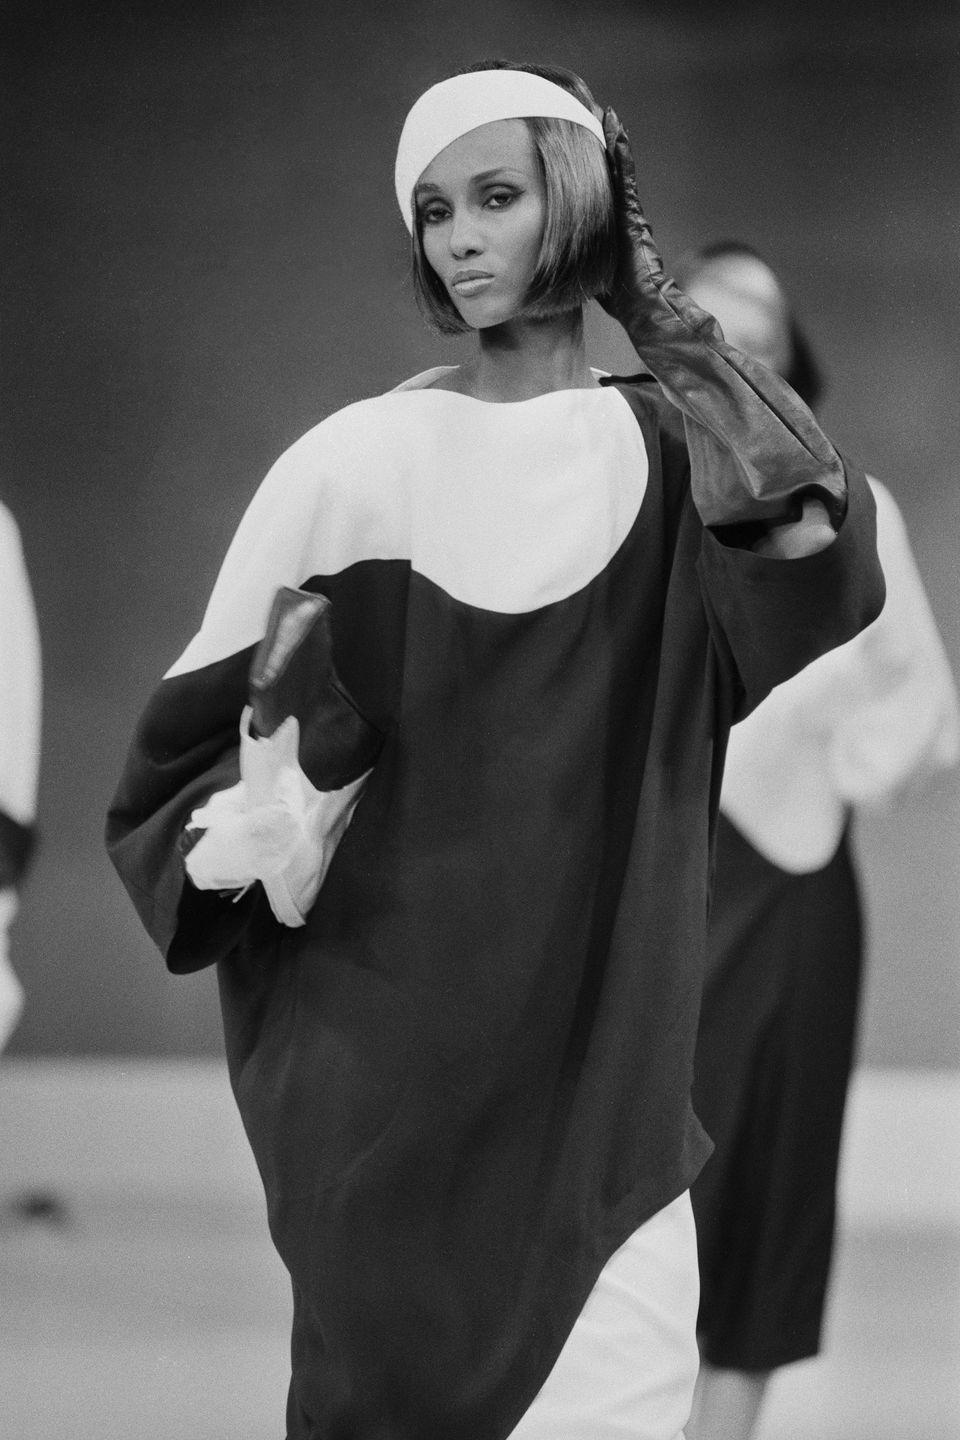 Photo credit: Iman on the Thierry Mugler catwalk in 1983 - Getty Images